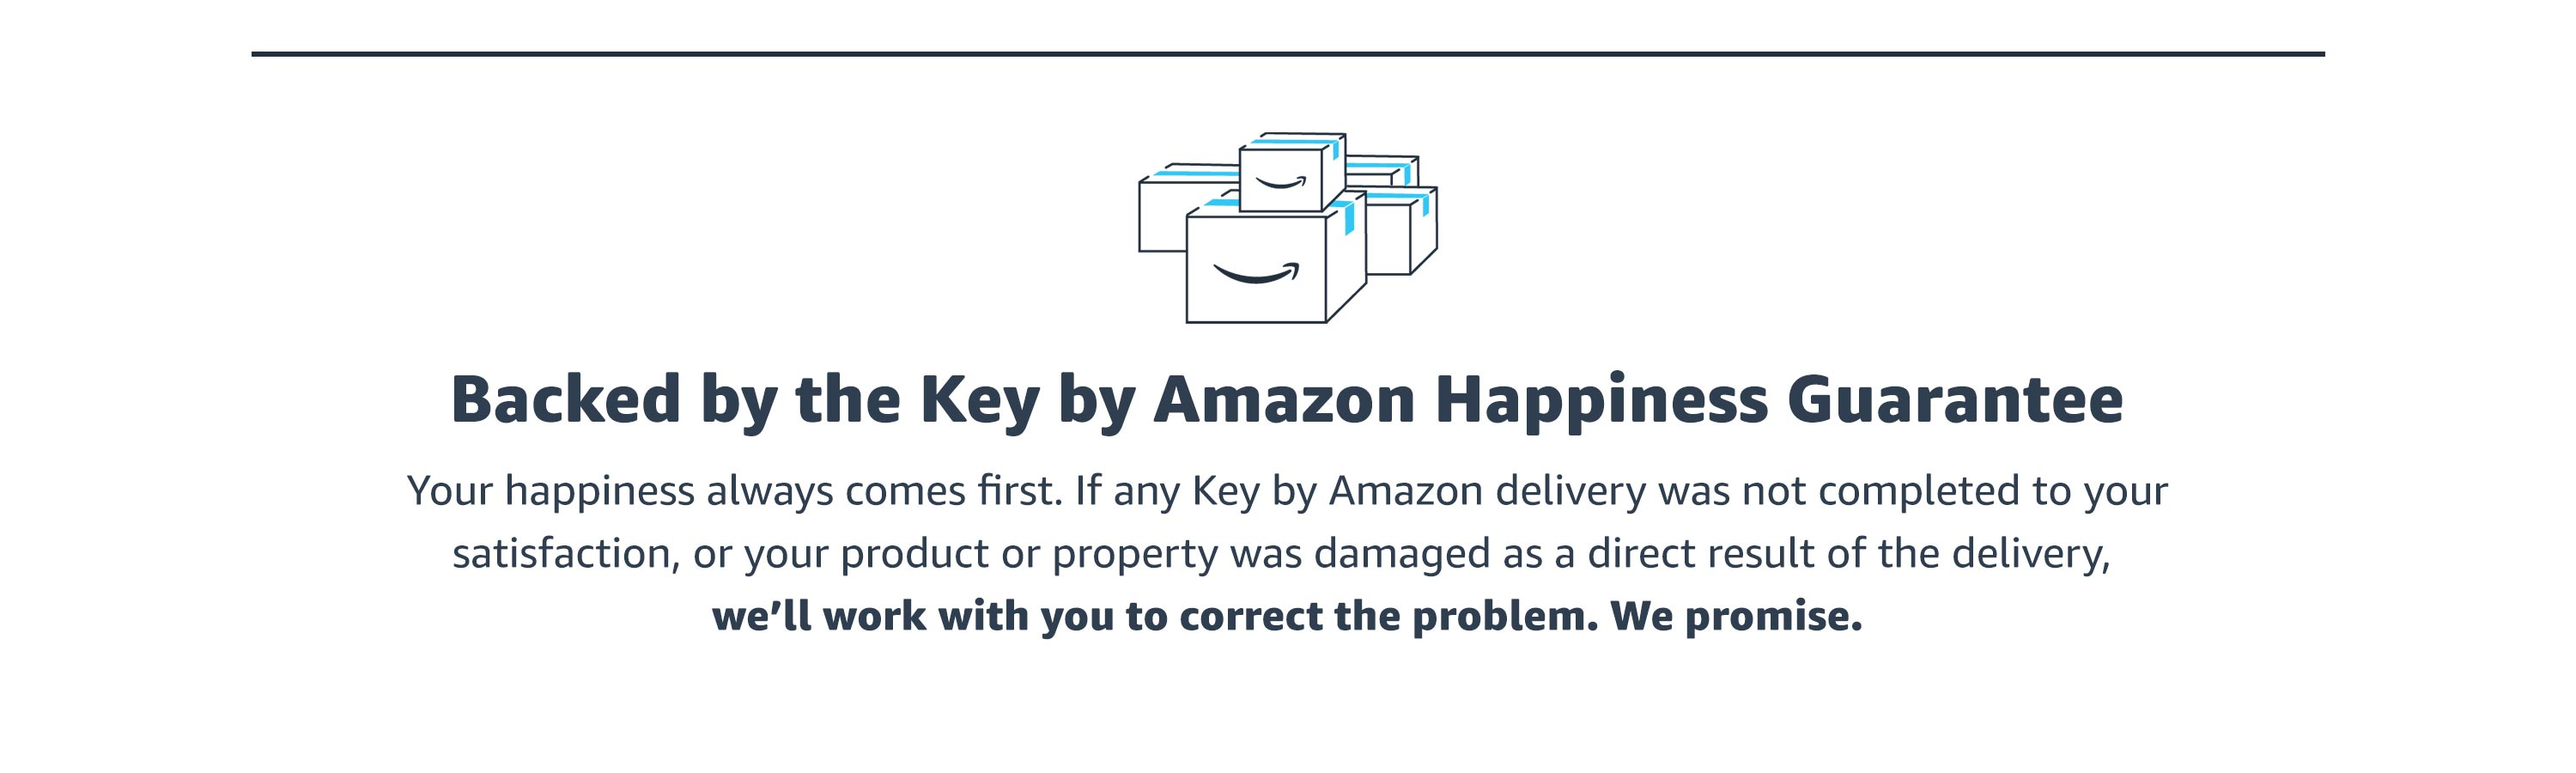 Backed by the Key by Amazon Happieness Guarantee